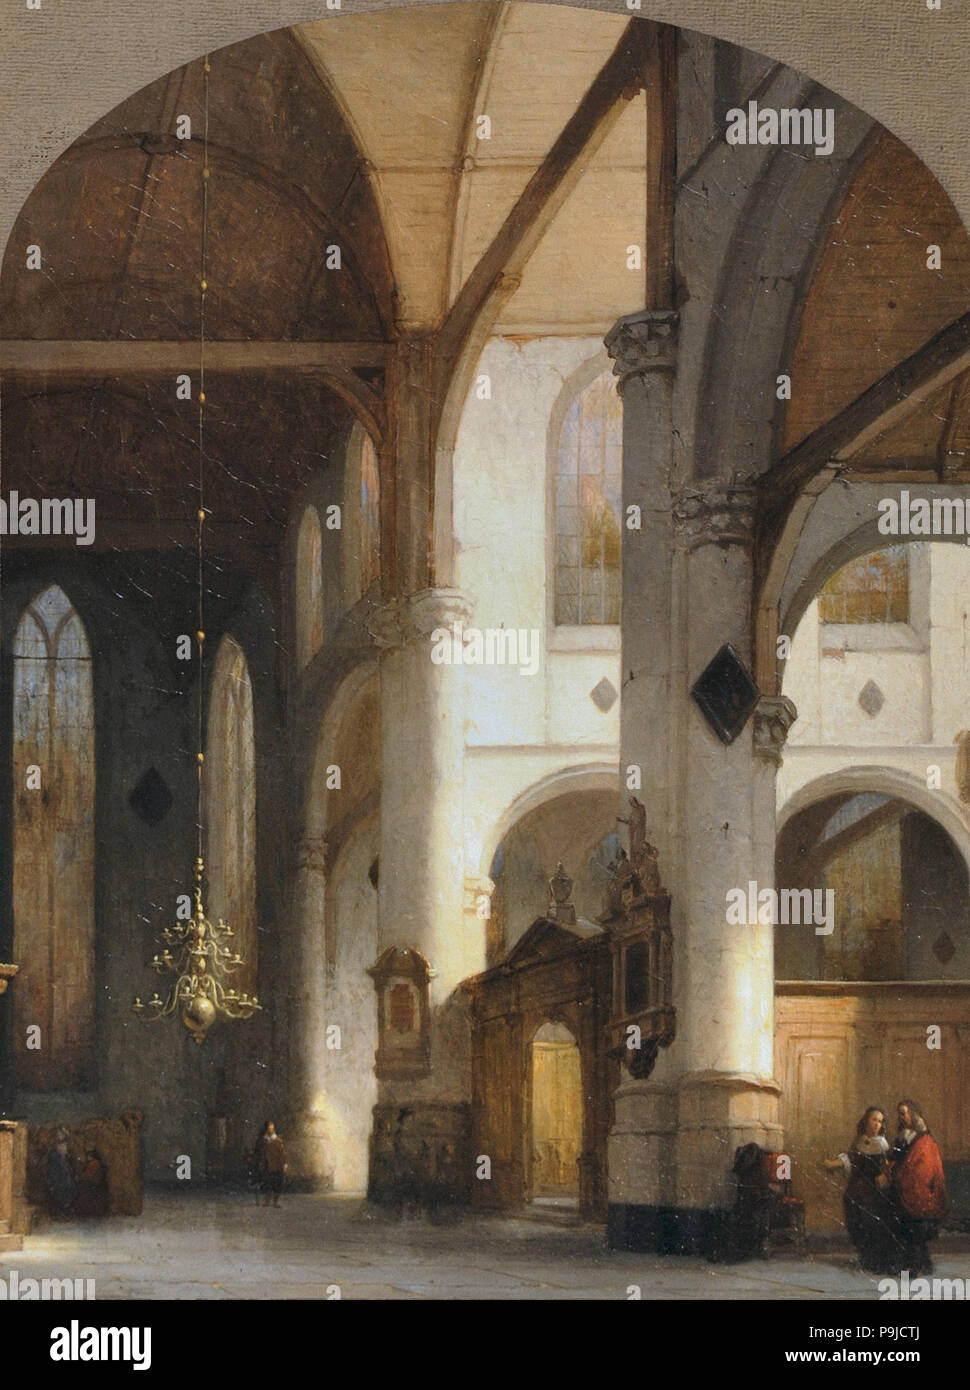 Schenkel Jan Jacob - Interieur Van De Sint-Janskerk in Gouda Stock ...